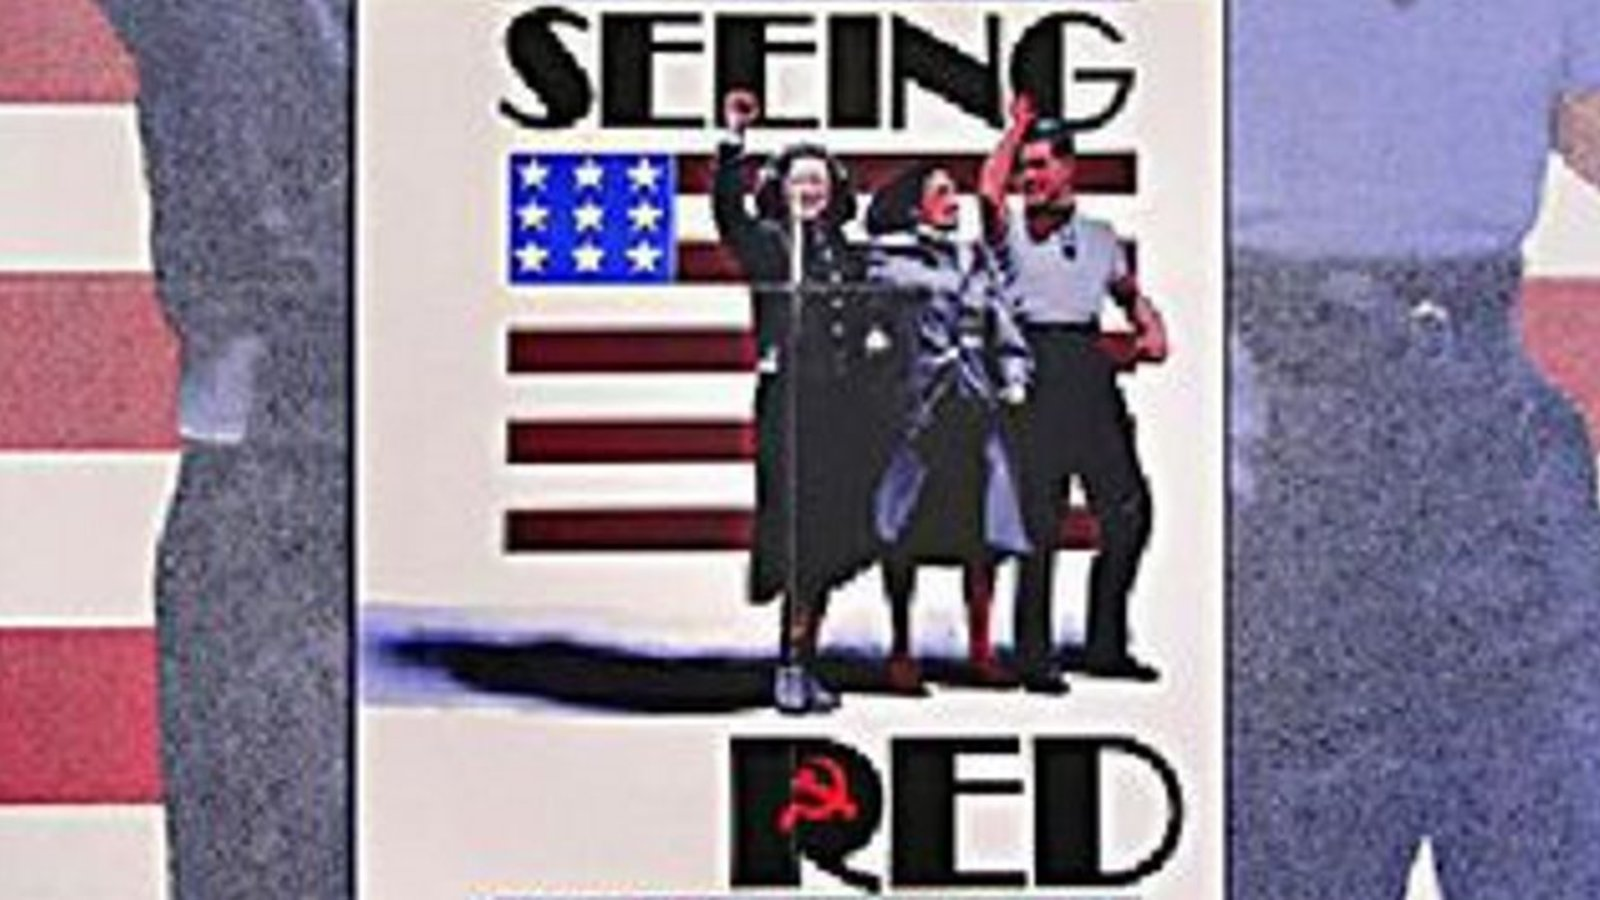 Seeing Red - Stories of American Communists